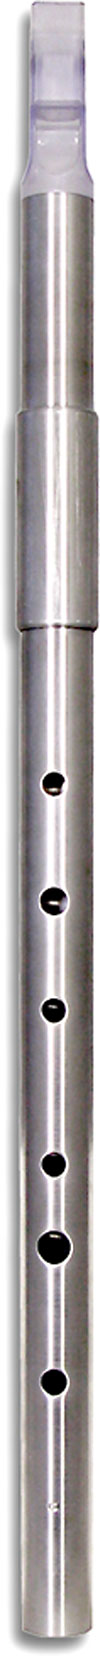 Chieftain Optima Low F Whistle, Tuneable Black ABS Kerry Pro style mouthpiece, tuneable. Made by Chieftain